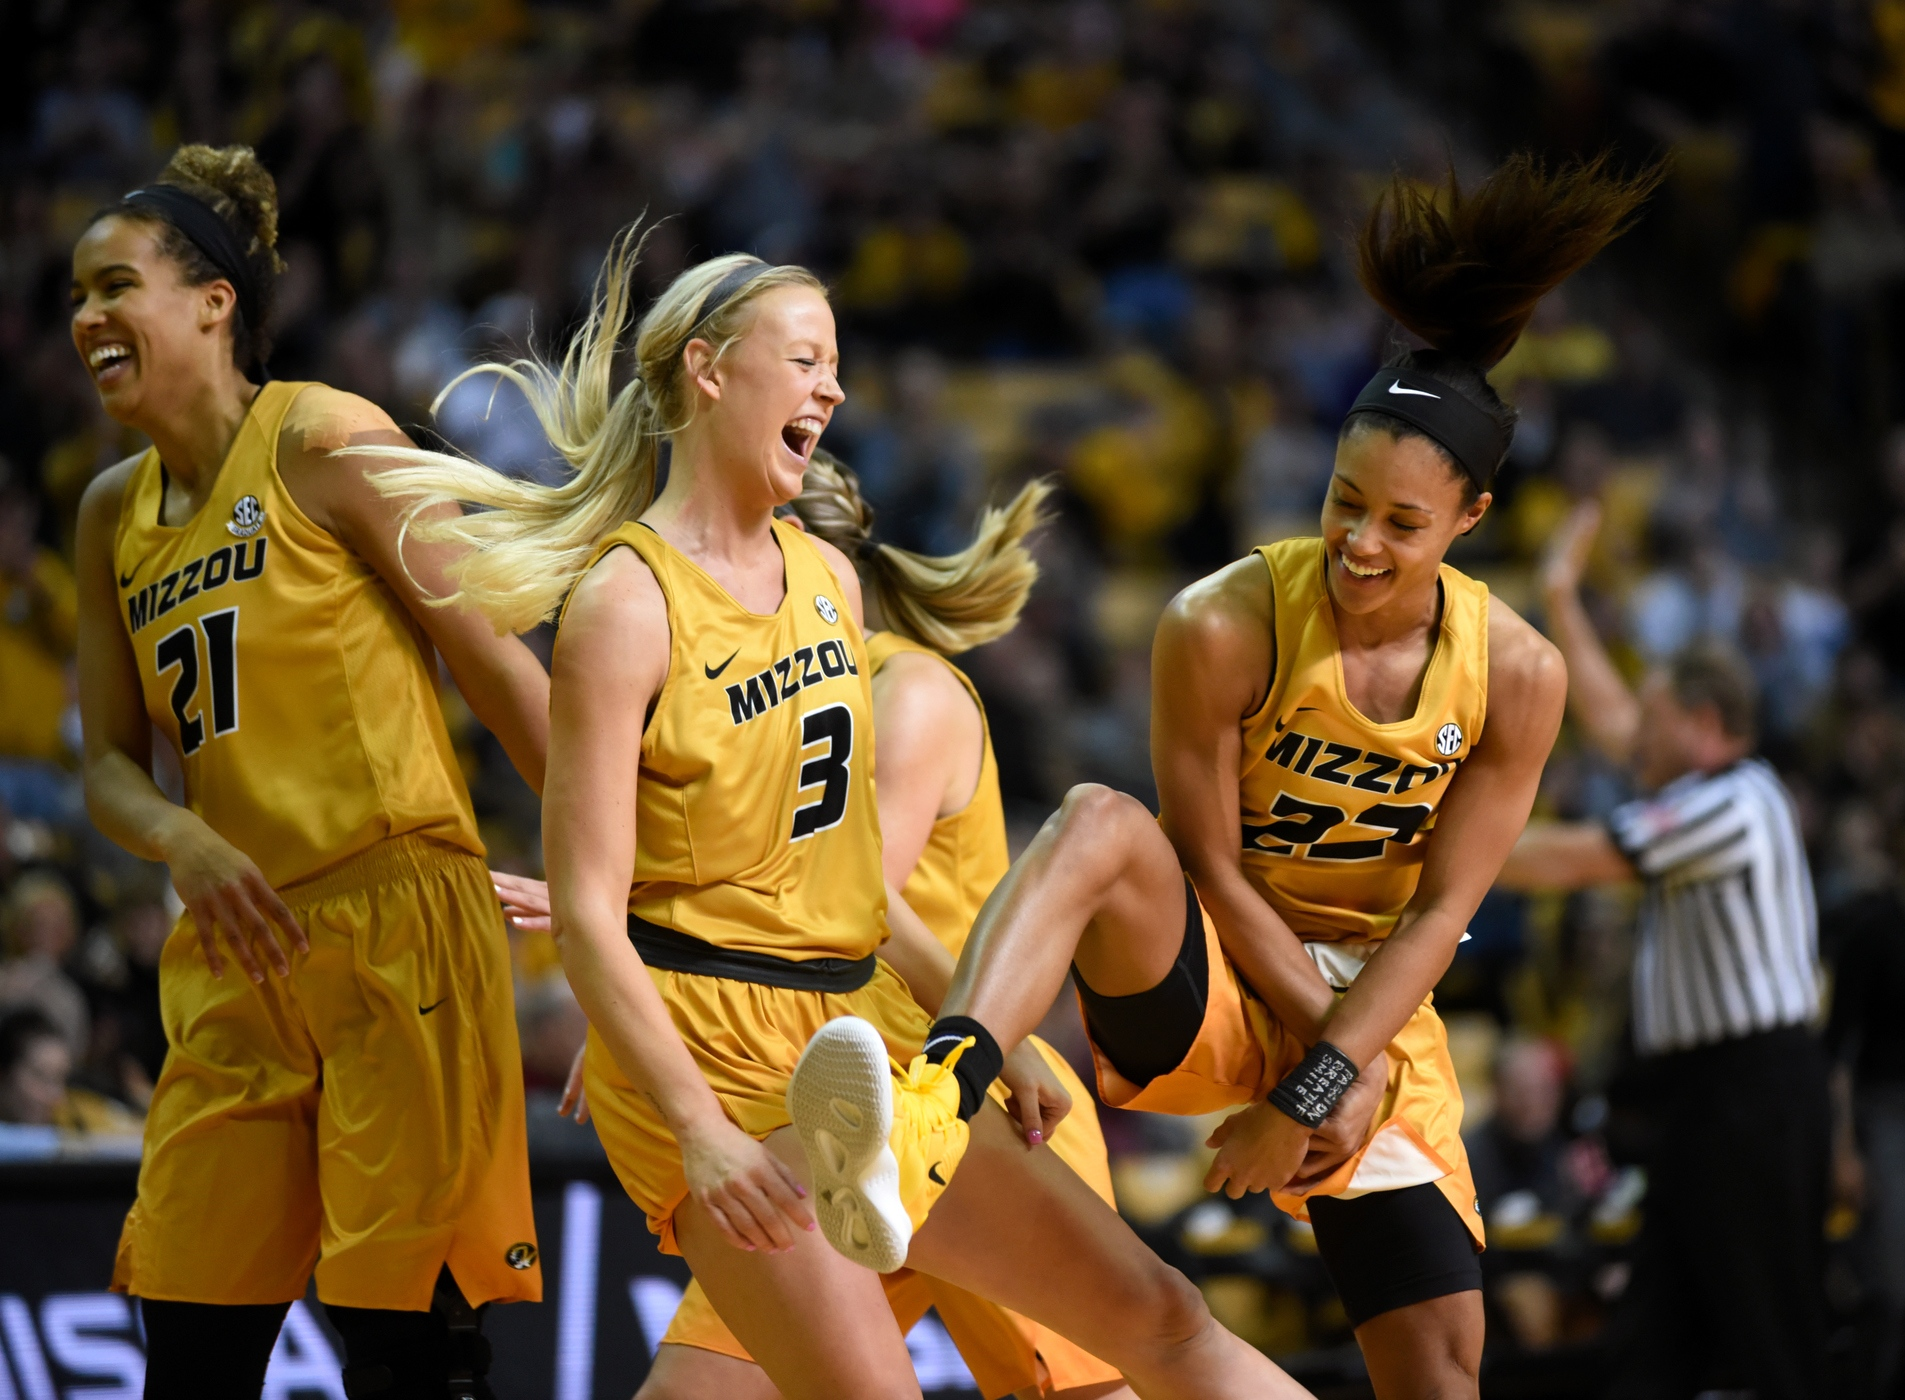 University of Missouri's Cierra Porter, Sophie Cunningham and Jordan Roundtree( celebrate after Mizzou sinks a basket on Sunday, March 03, 2019 in Columbia. Mizzou Women's Basketball faced off against Alabama in their final home game of the season.